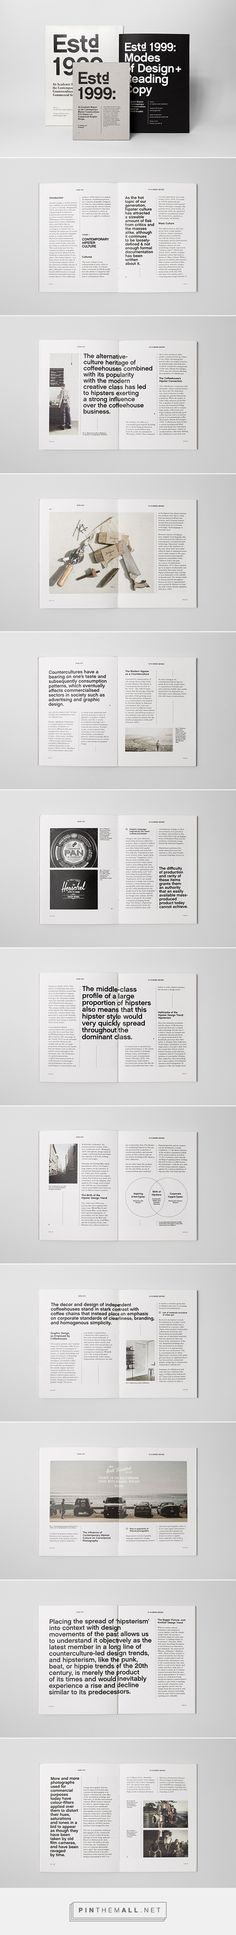 Estd 1999: An Academic Report https://www.behance.net/gallery/23070193/Estd-1999-An-Academic-Report